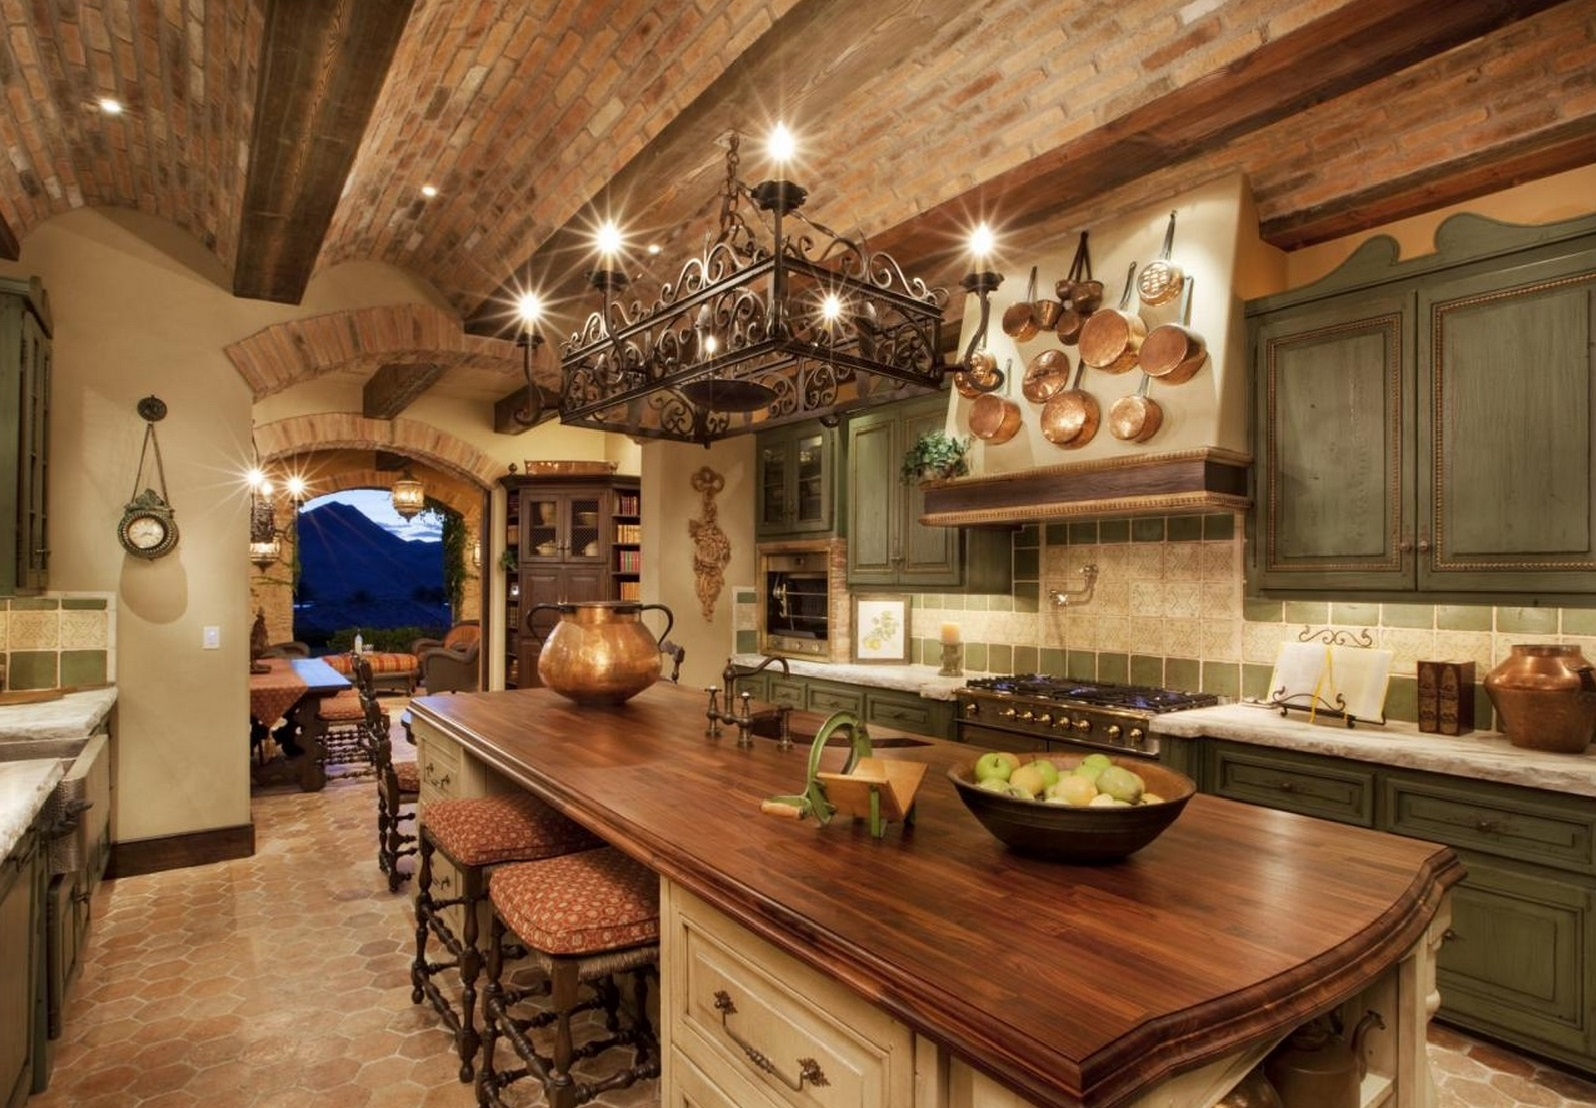 Unique Ceiling Design With Exposed Brick Creating Focal Point Of Rustic  Kitchen